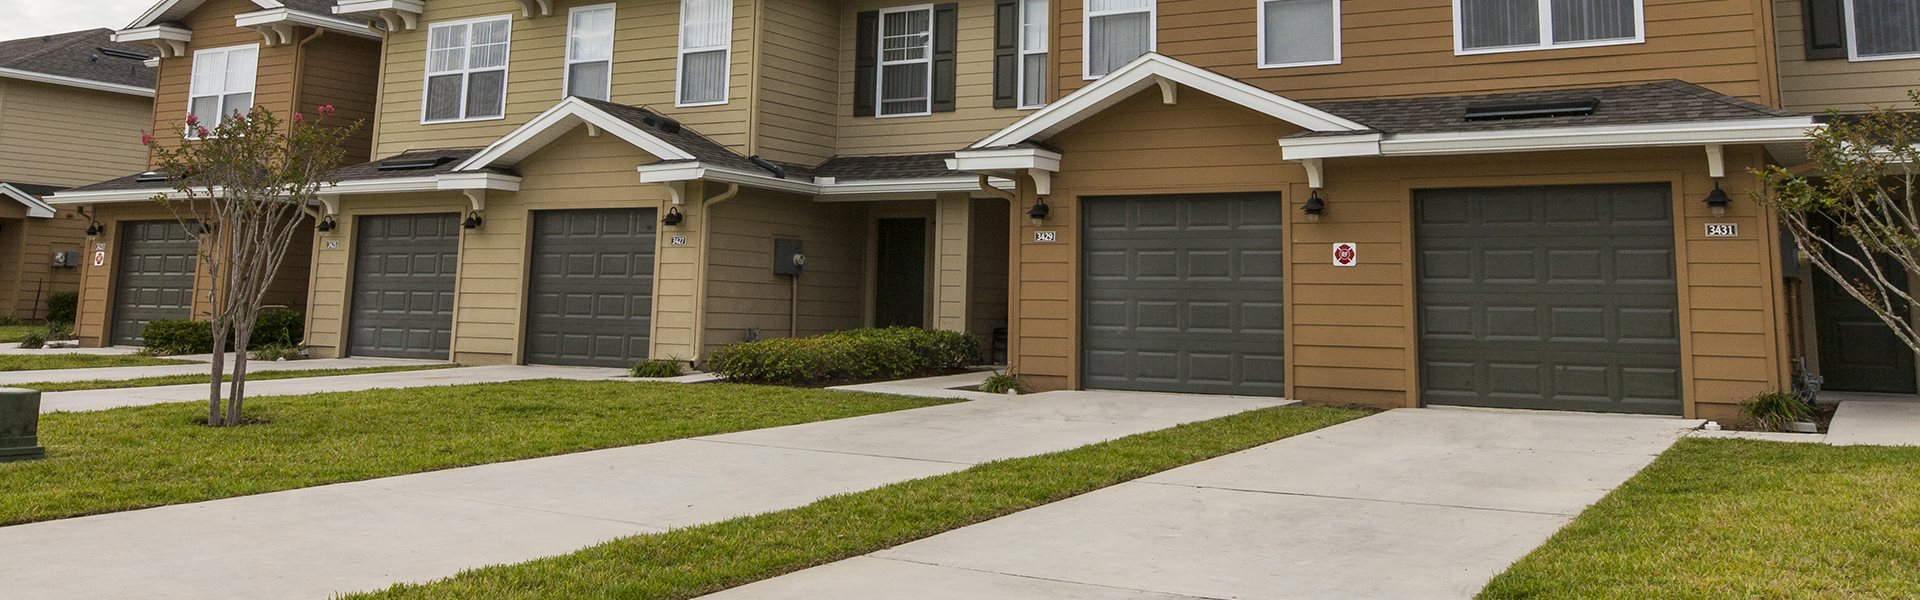 Ample Parking Area And Detached Garages Available